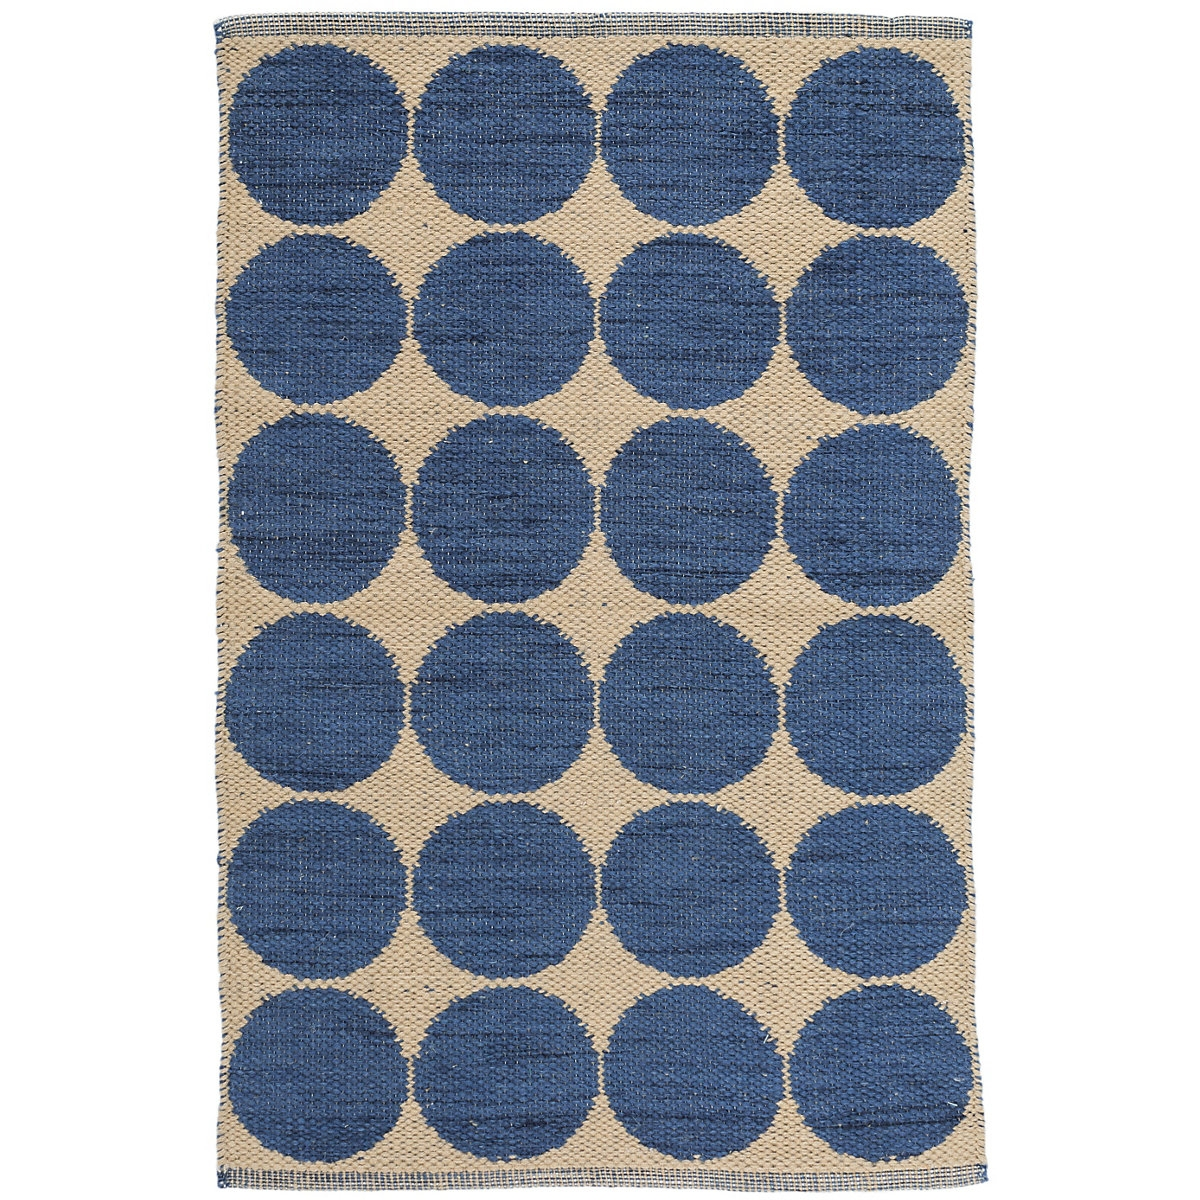 Dash Albert Orbit Blue Woven Wool Rug Inside Wool Blue Rugs (Image 6 of 15)